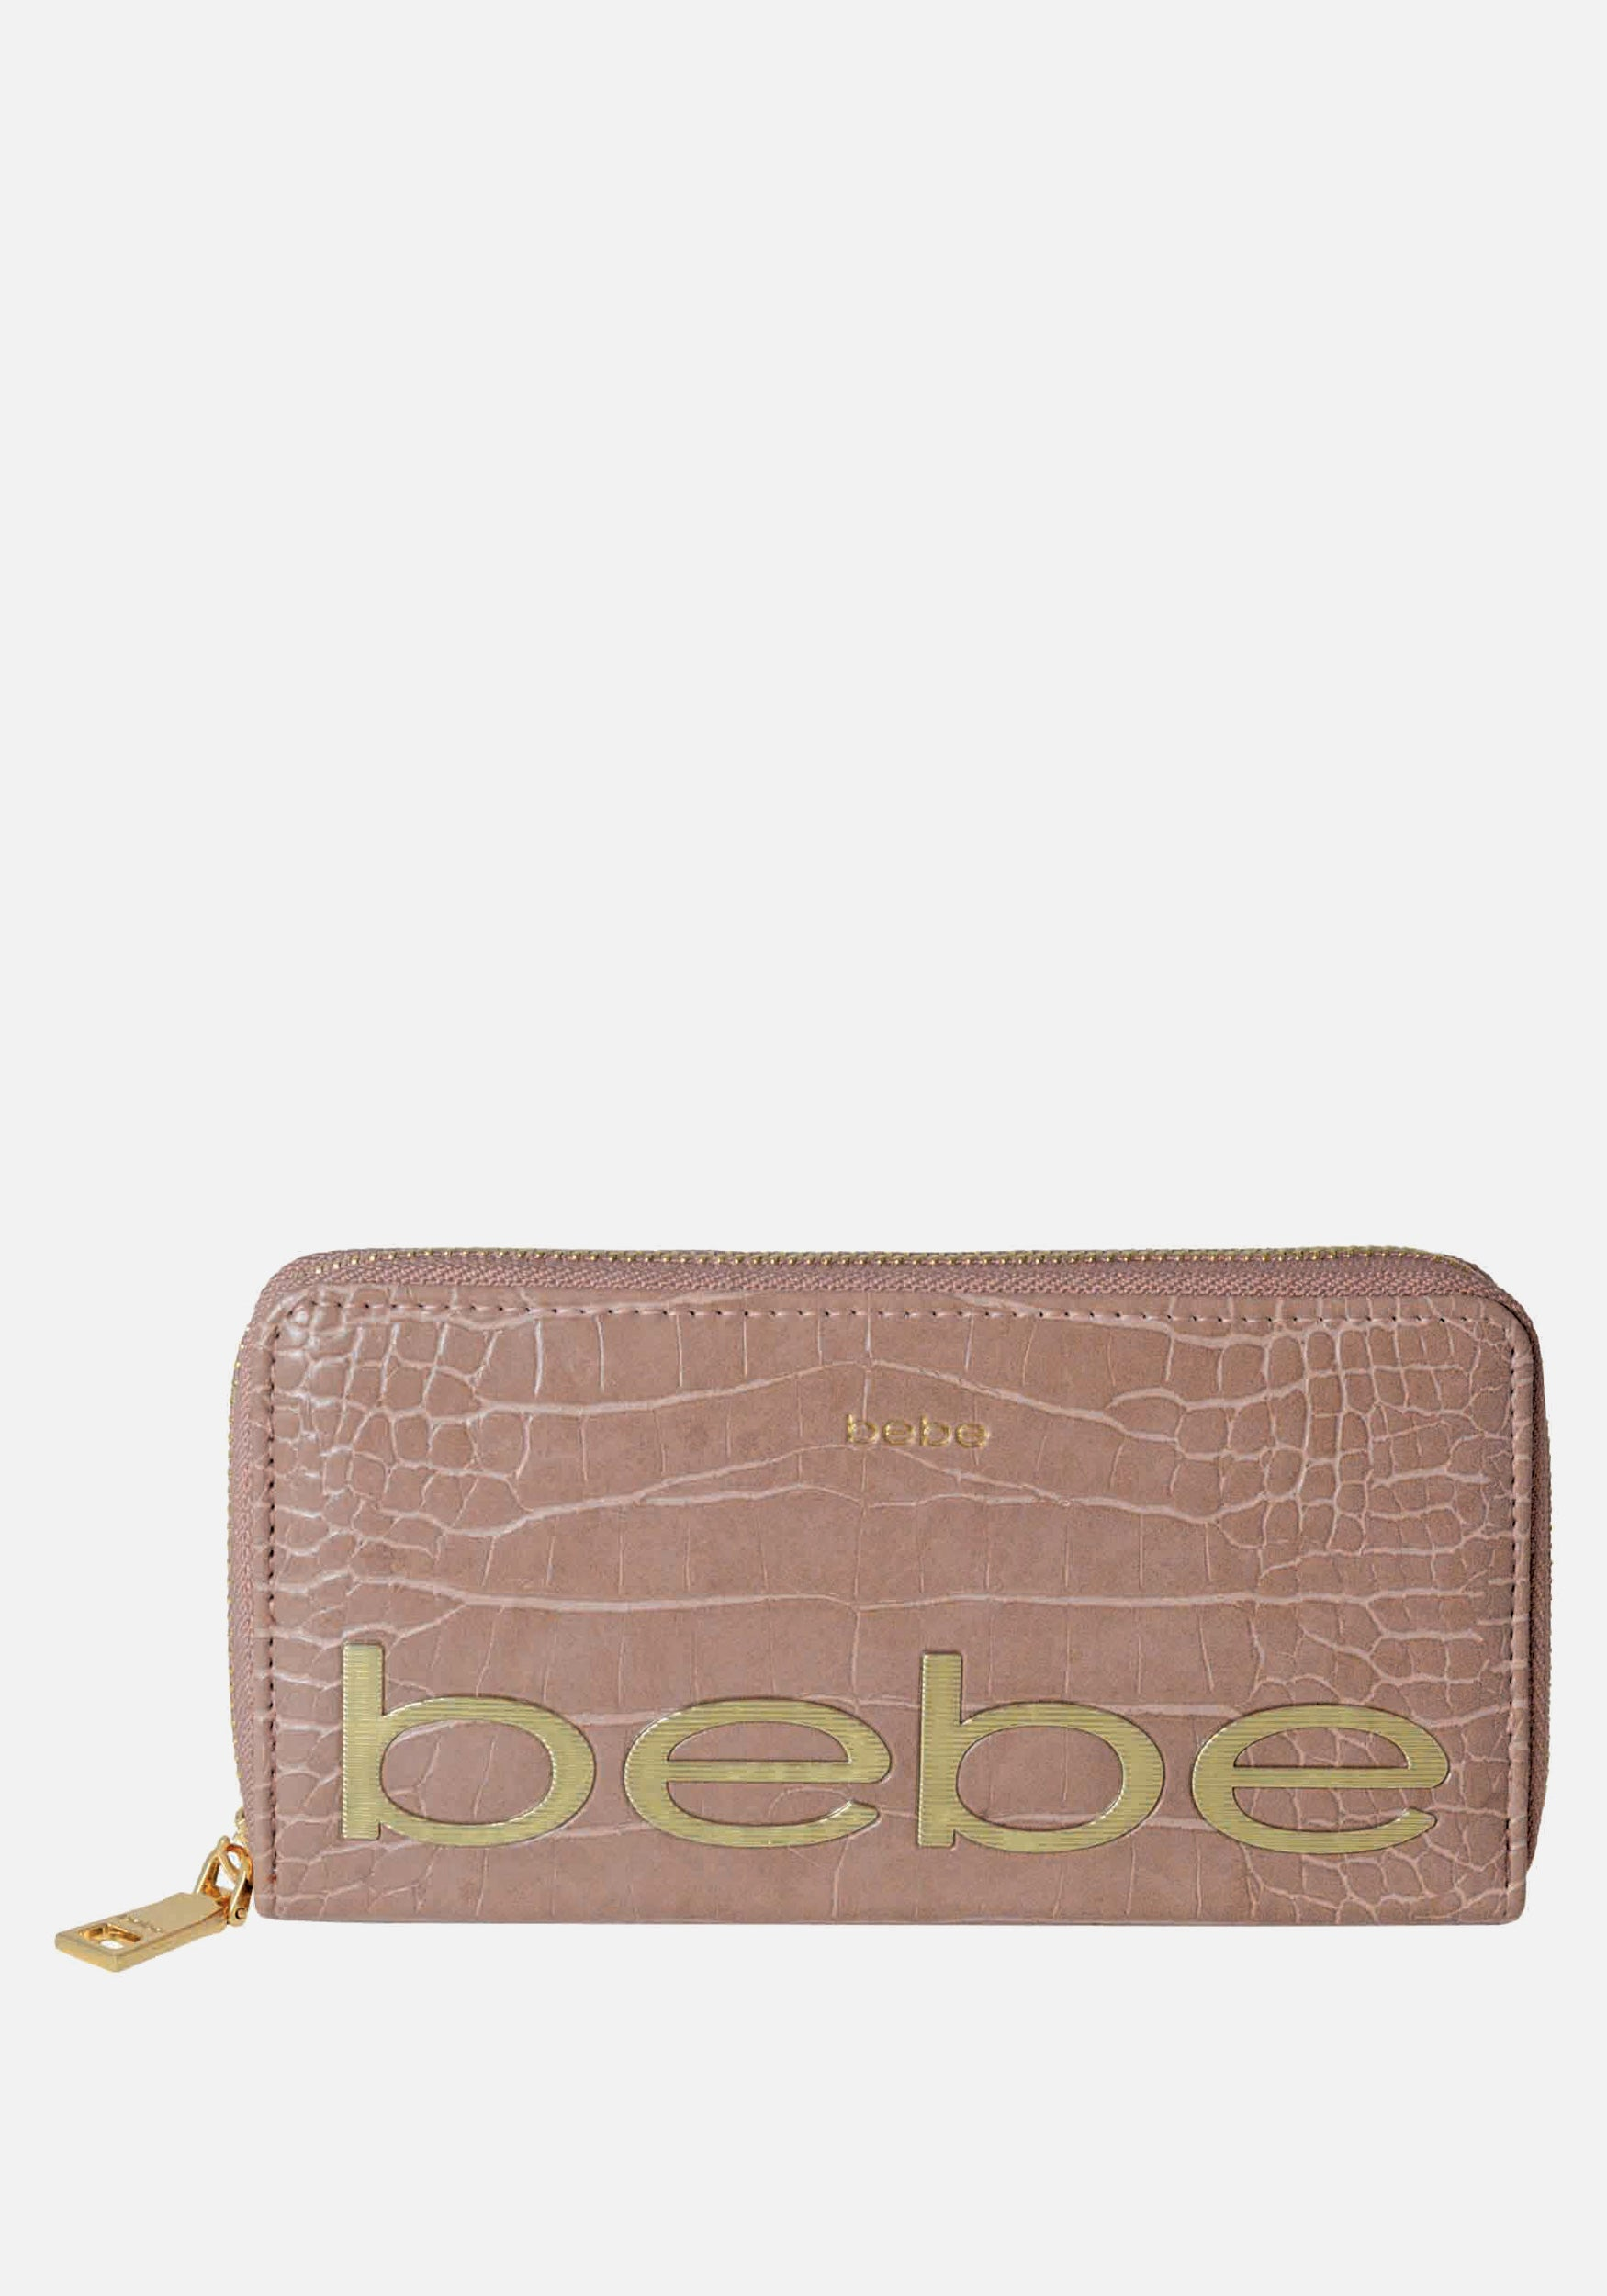 Bebe Women's Fabiola Stamped Wallet in Dark Blush Polyester